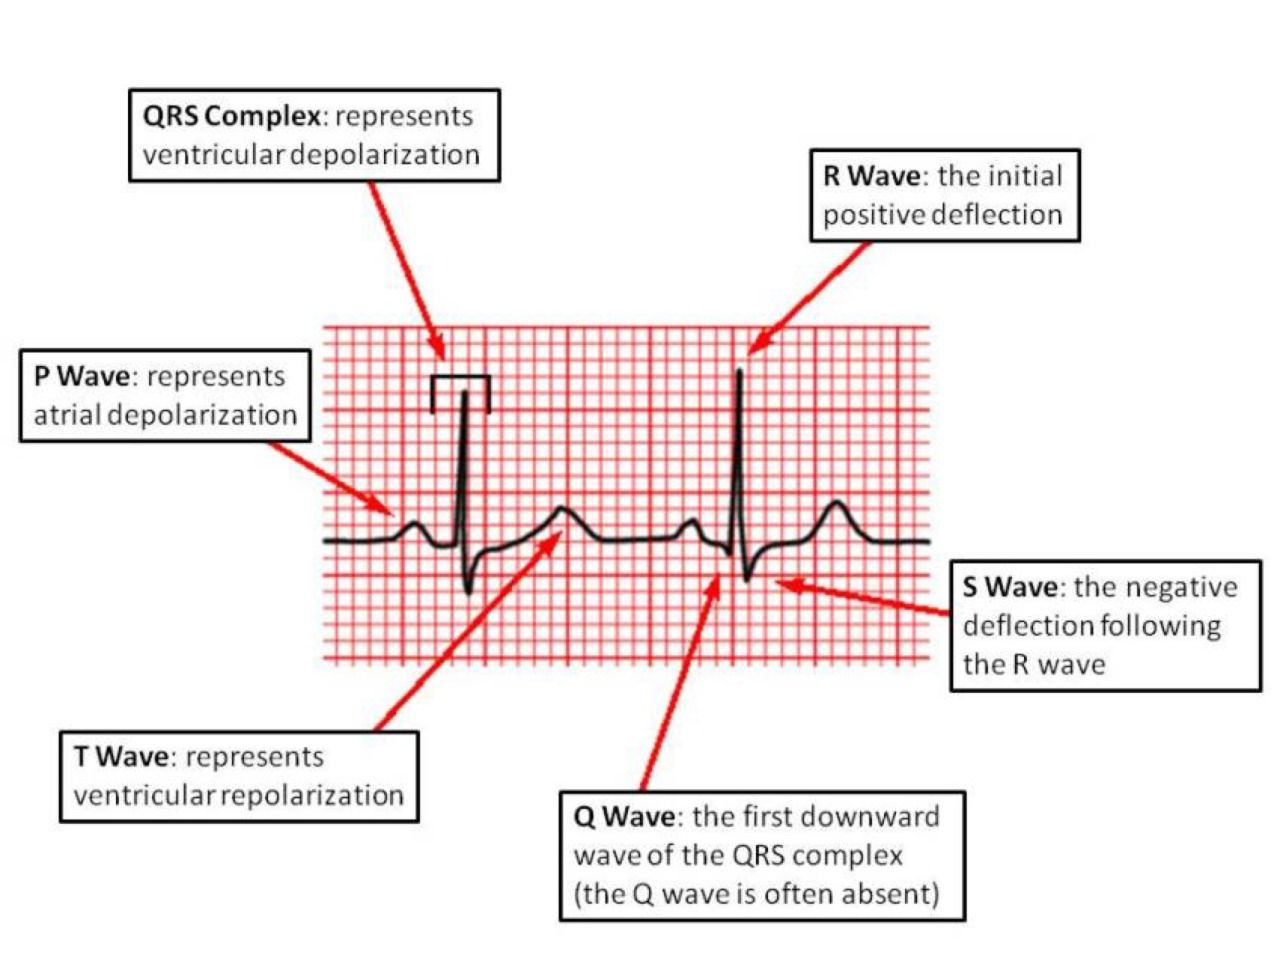 Ekg basics pr interval from the start of the p wave to the start ekg basics pr interval from the start of the p wave to the start of the qrs complex pr segmentfrom the end of the p wave to the start of the qrs pooptronica Images